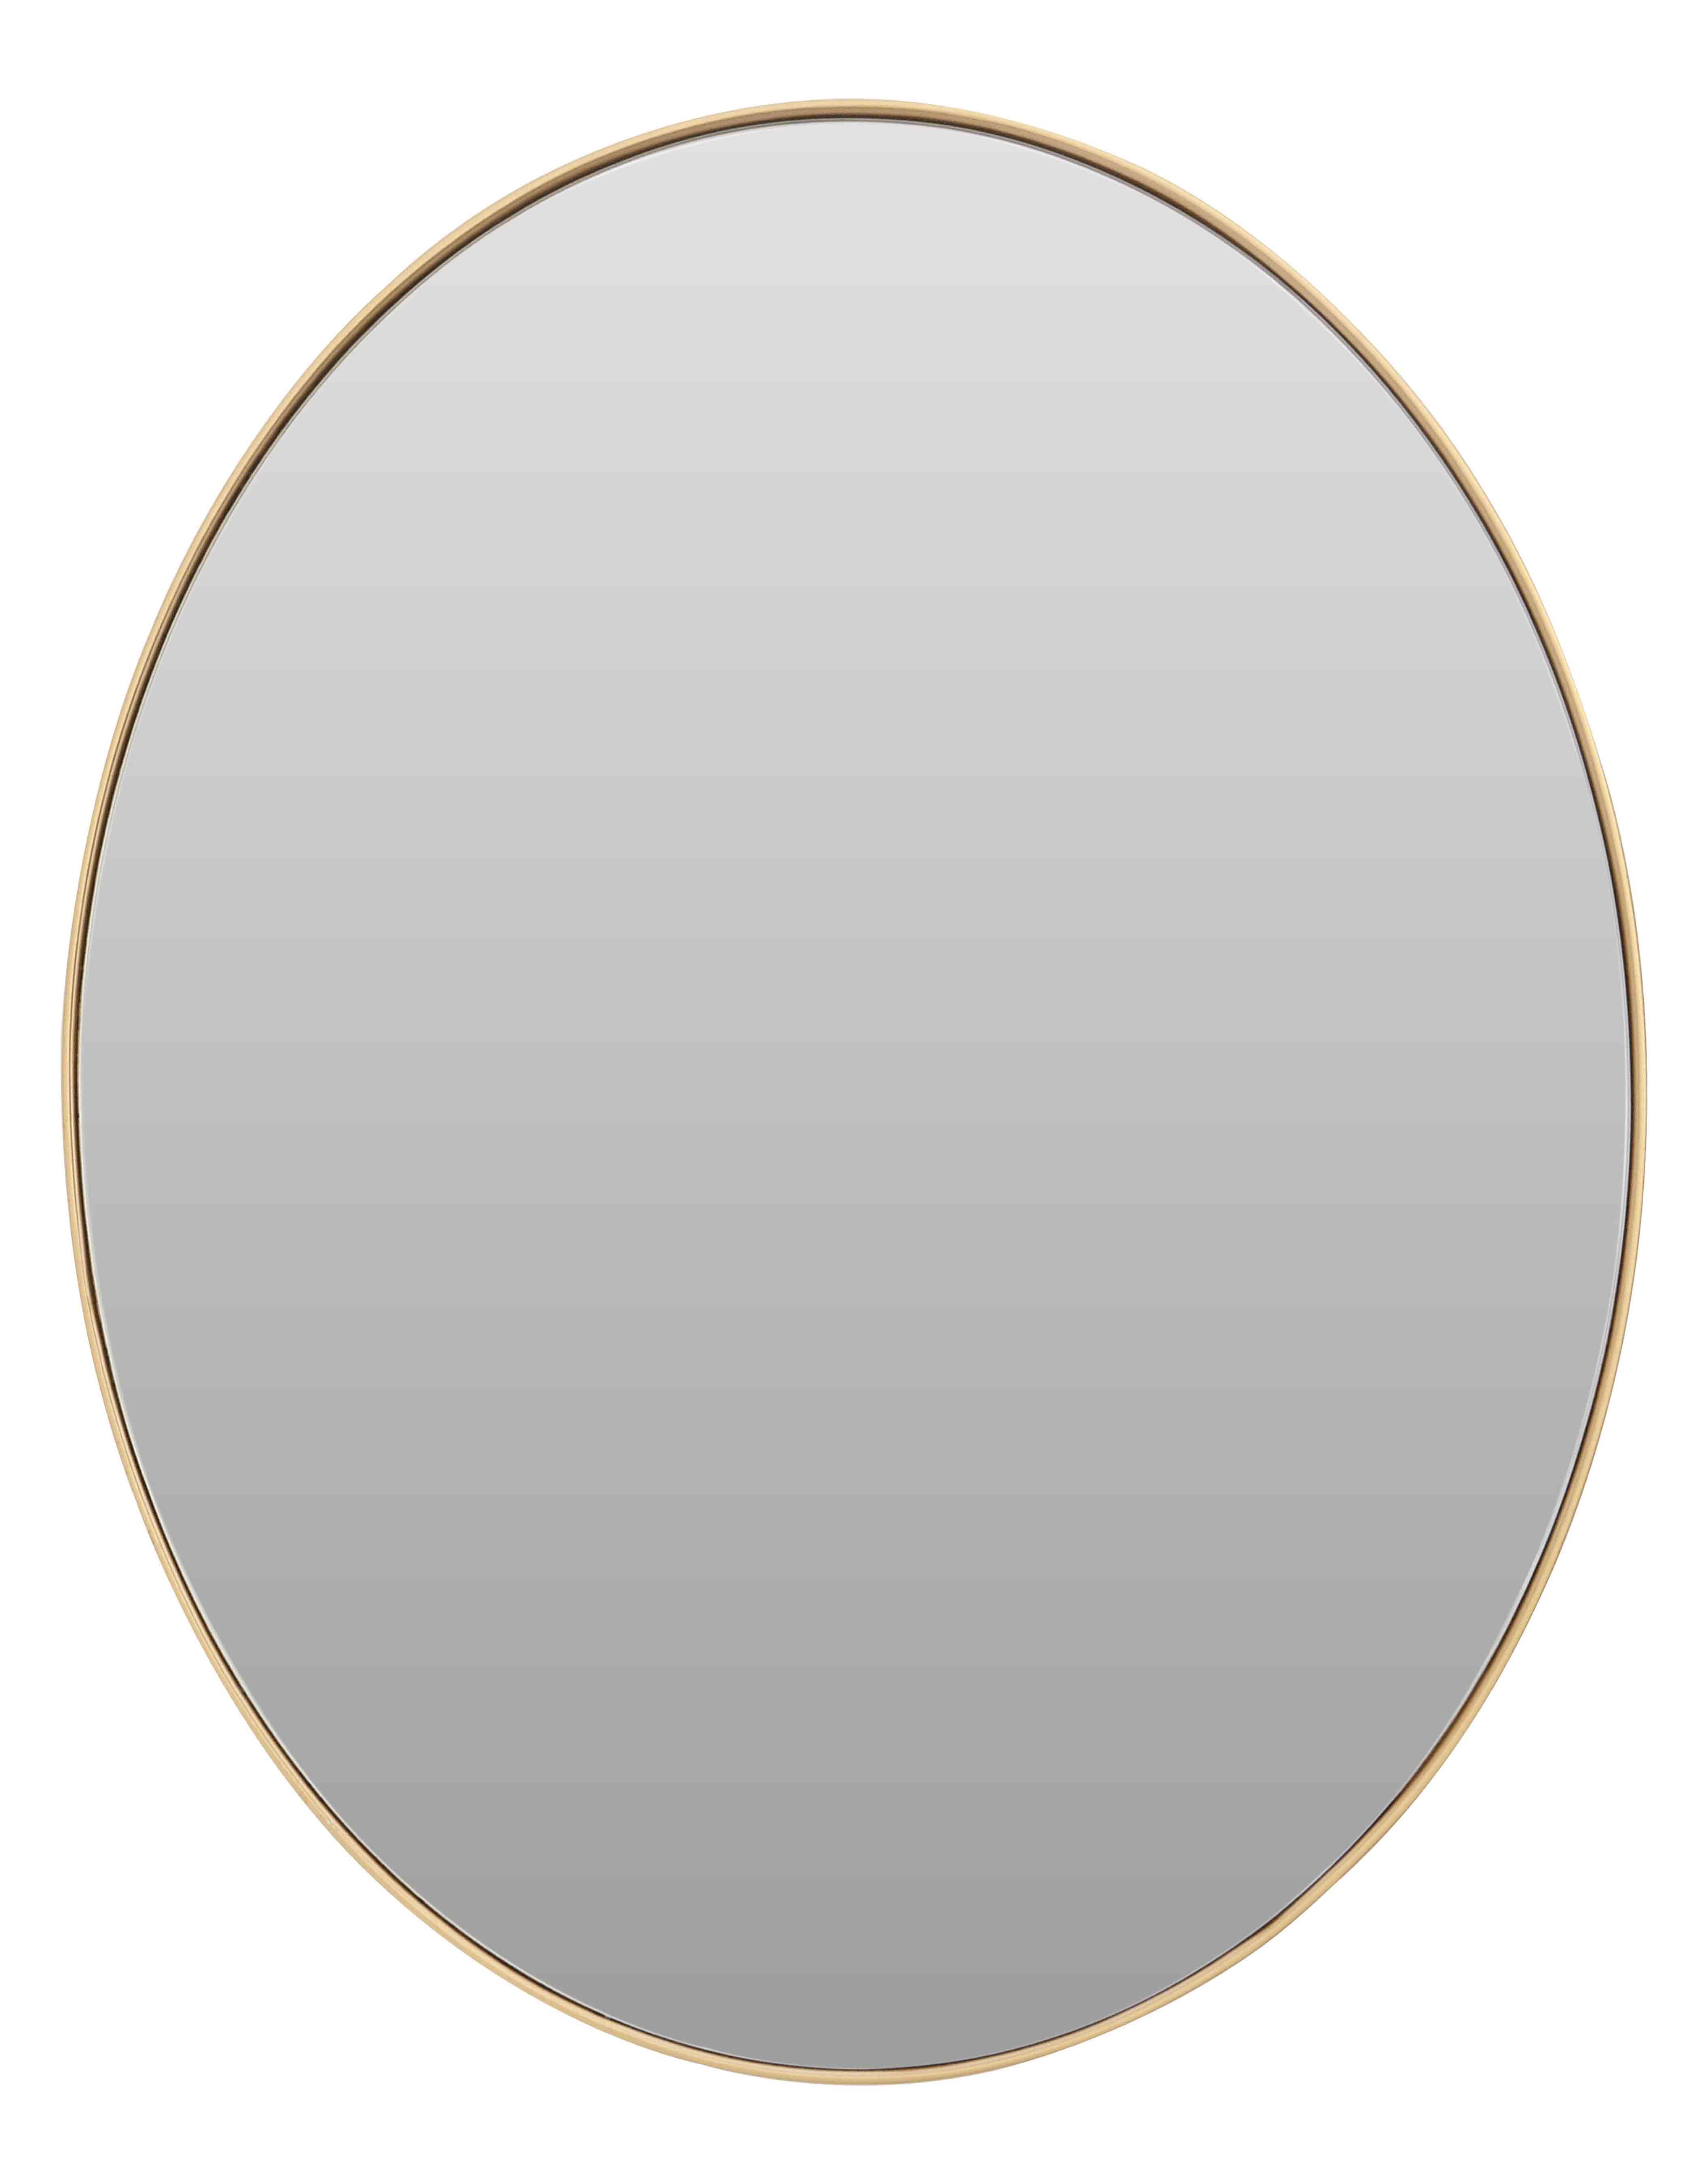 Fashionable Small Oval Wall Mirrors Within Gold Finish Oval Wall Mirrorfifty Five South In Wall Mirrors (View 18 of 20)